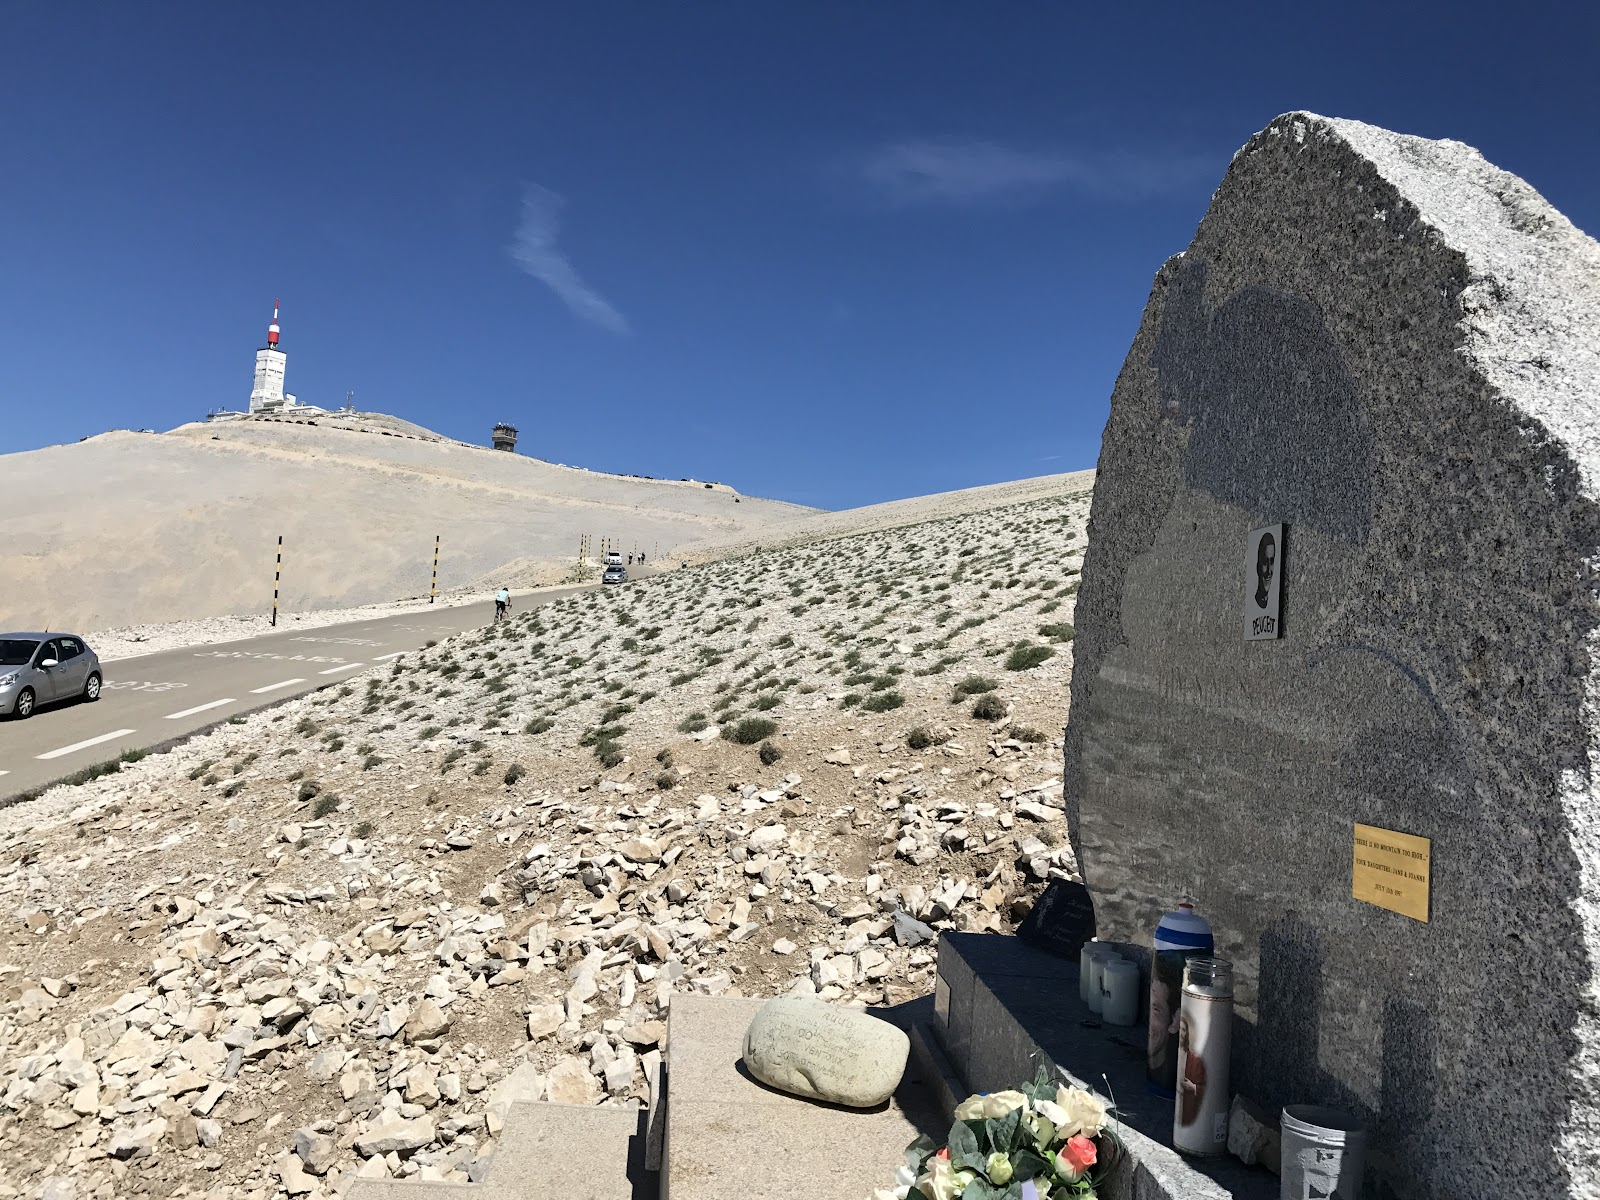 Cycling Mont Ventoux - Tom Simpson Memorial - radio tower in background